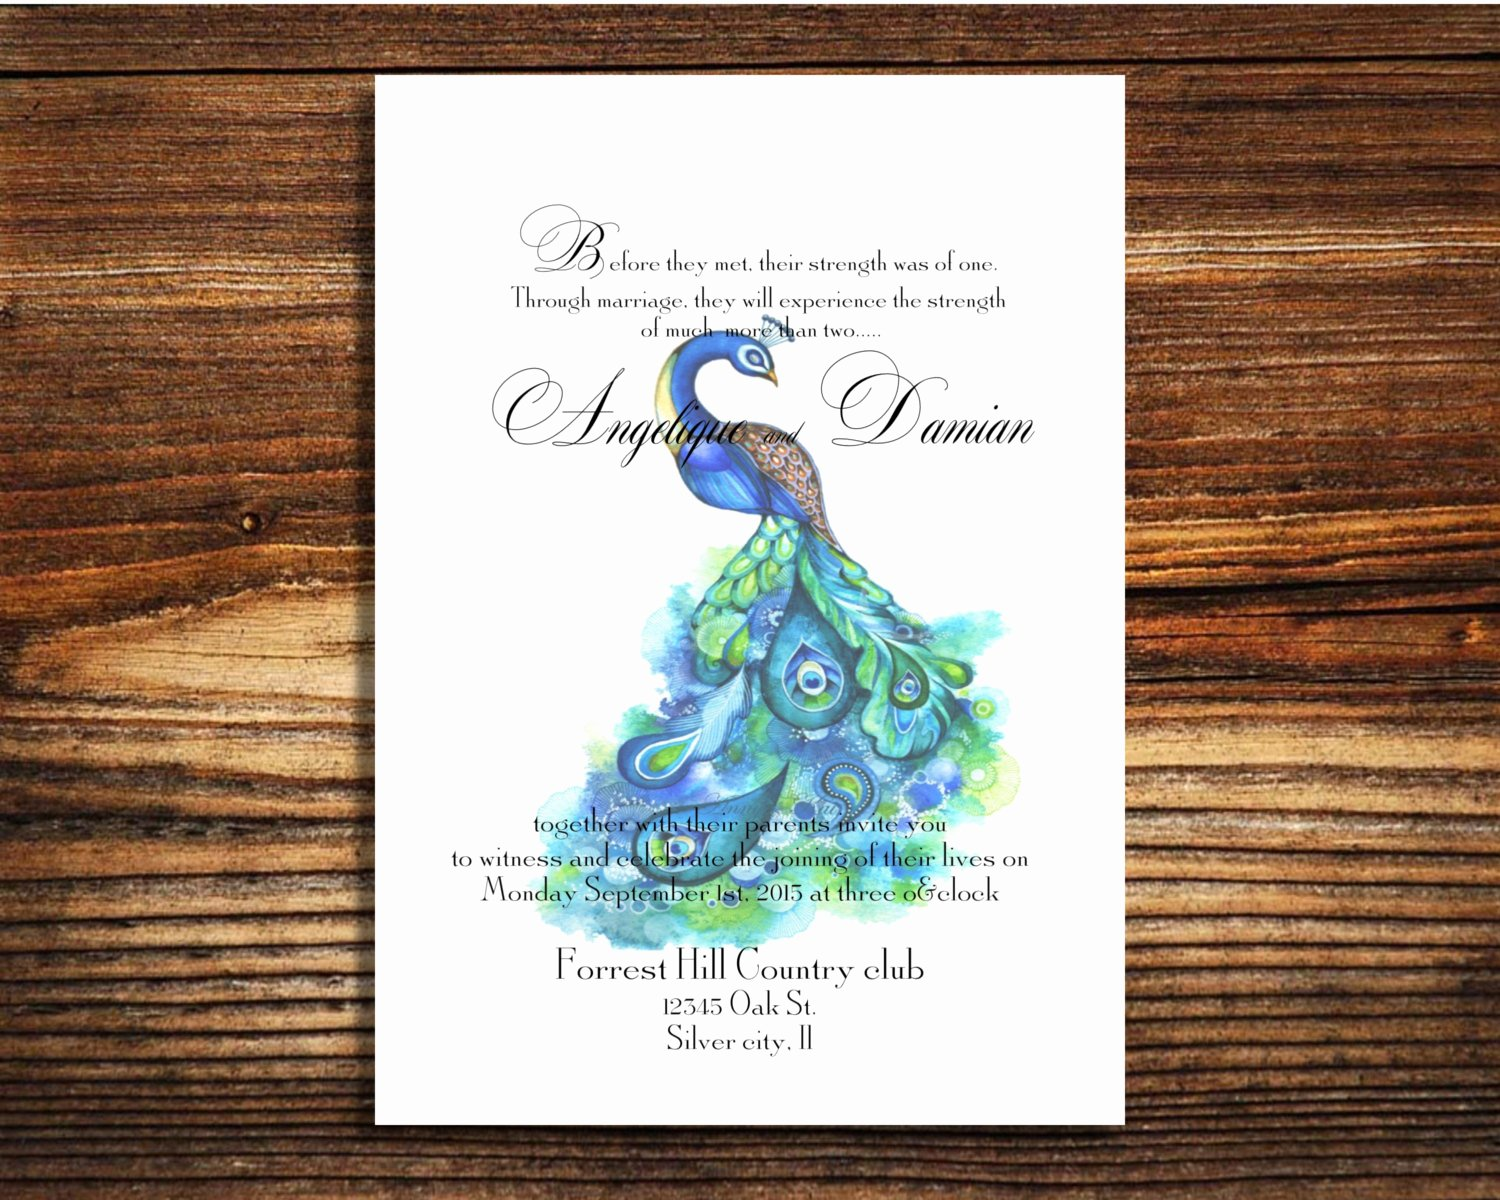 Peacock Invitations Template Free Awesome Peacock Wedding Invitations Modern Invites